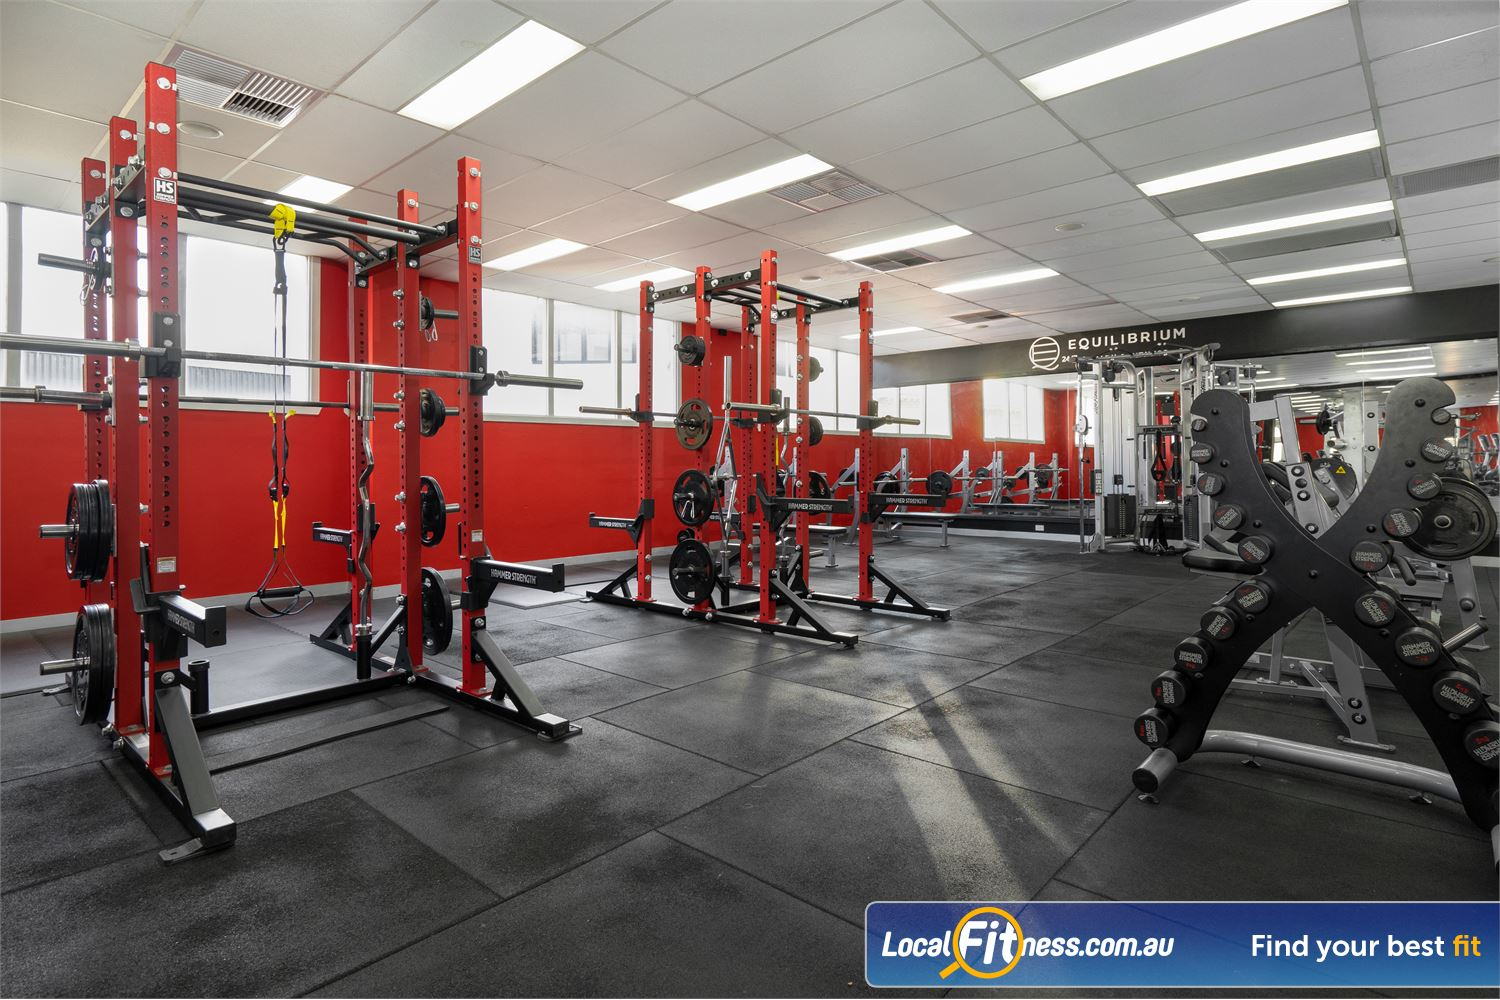 Equilibrium Health & Fitness 24/7 Near Parkville Our power racks are perfect for TRX, deadlift, squat training and more.